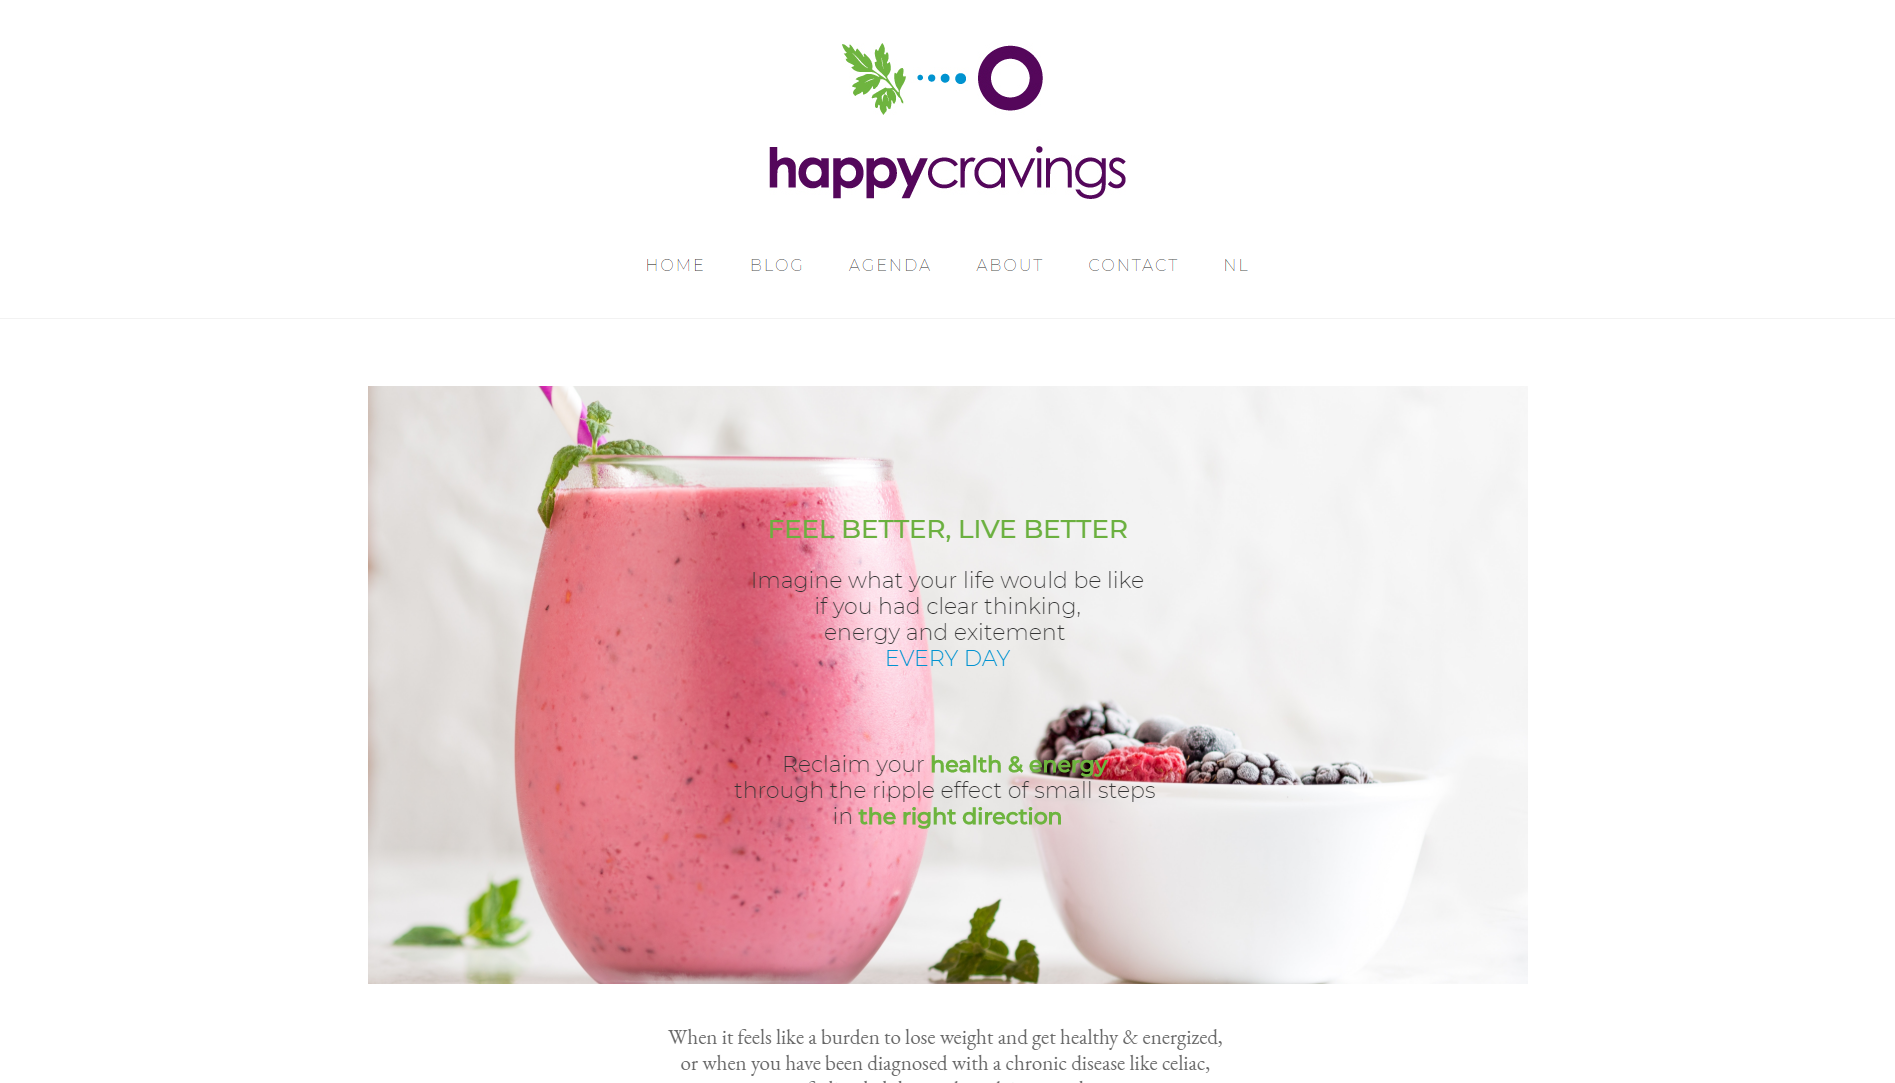 www.happycravings